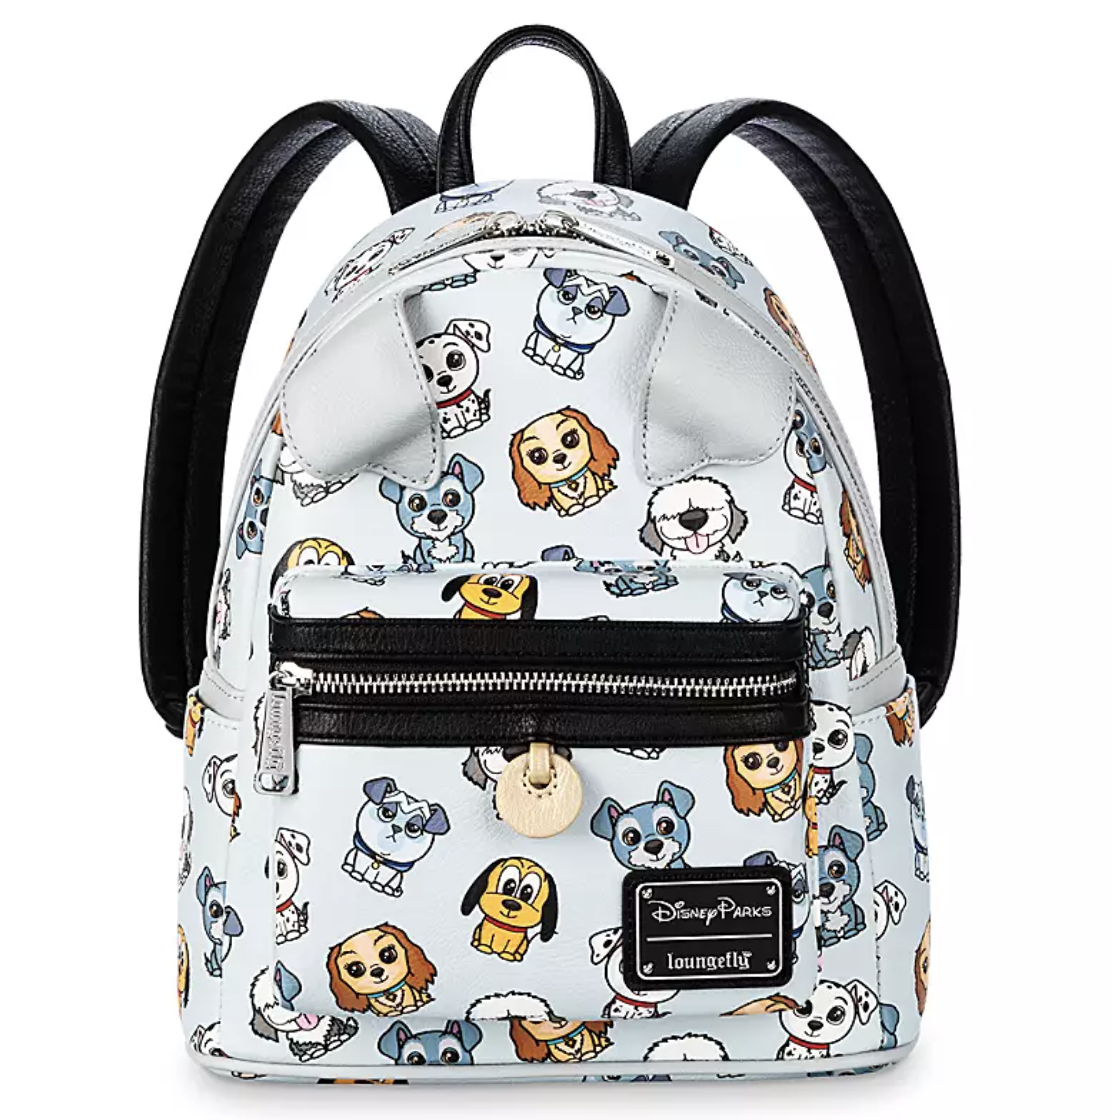 a pale blue mini back pack with black straps, a black zippered front pocket, subtle folded over dog ears, and an all-over pattern of various dogs from Disney films